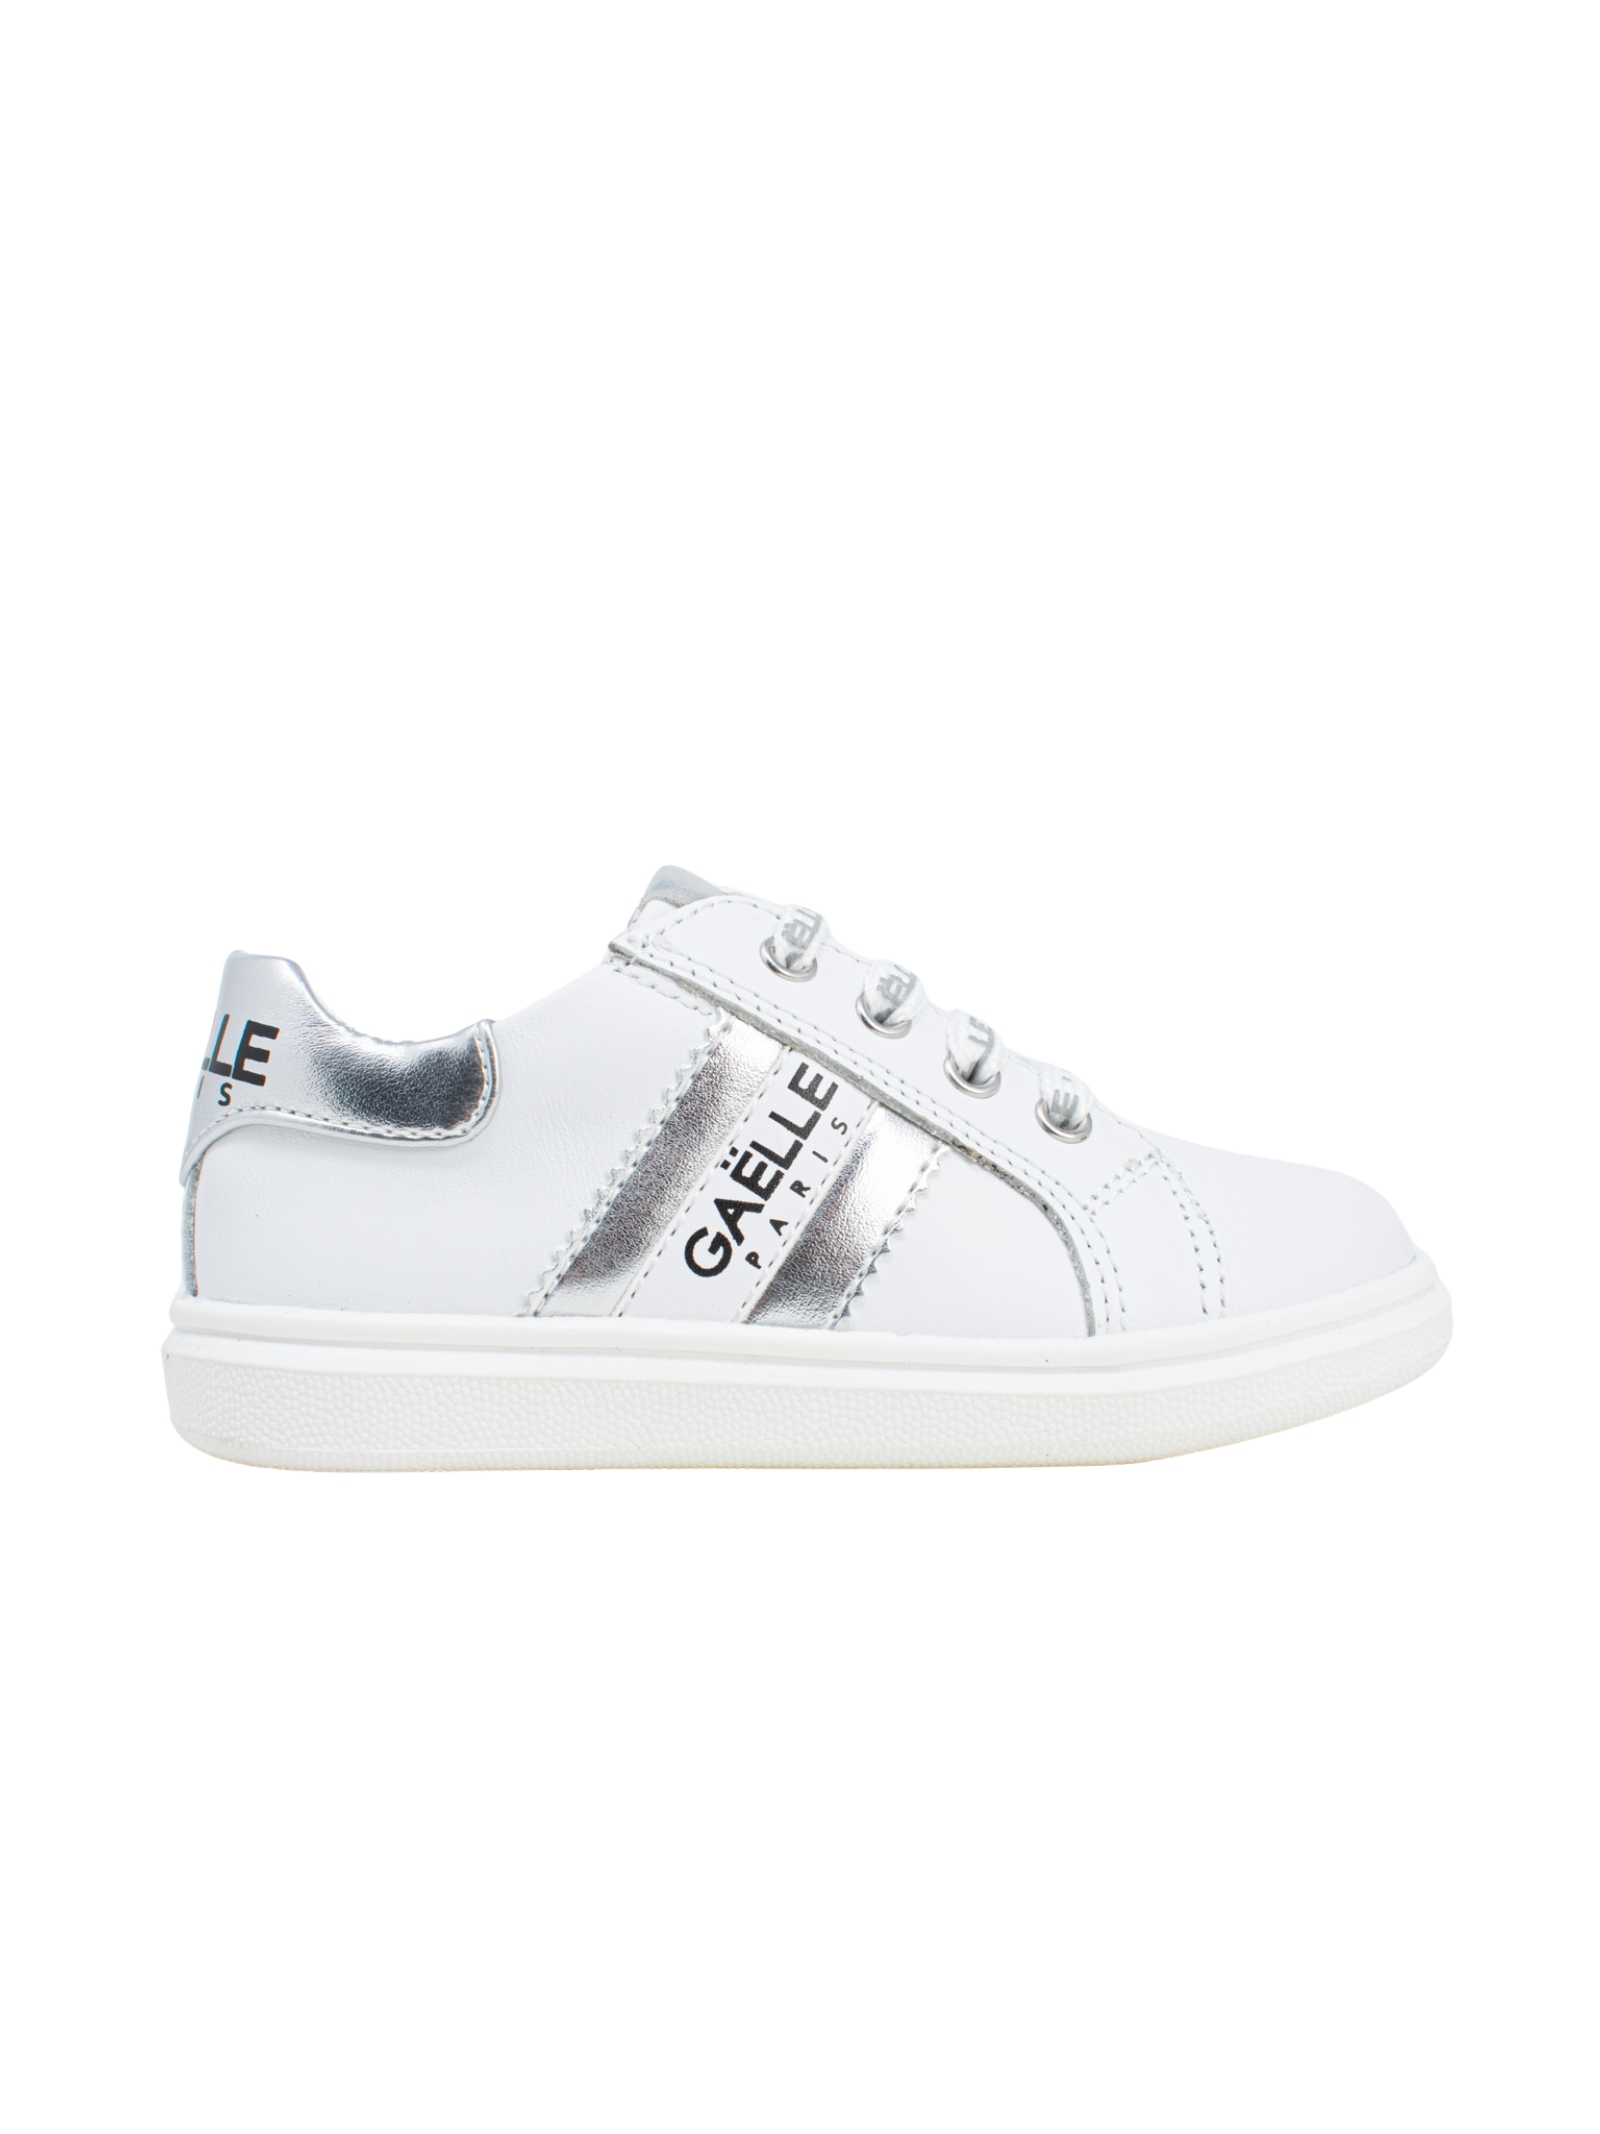 Sneakers Bambina White SP GAËLLE PARIS KIDS | Sneakers | G741BIANCO